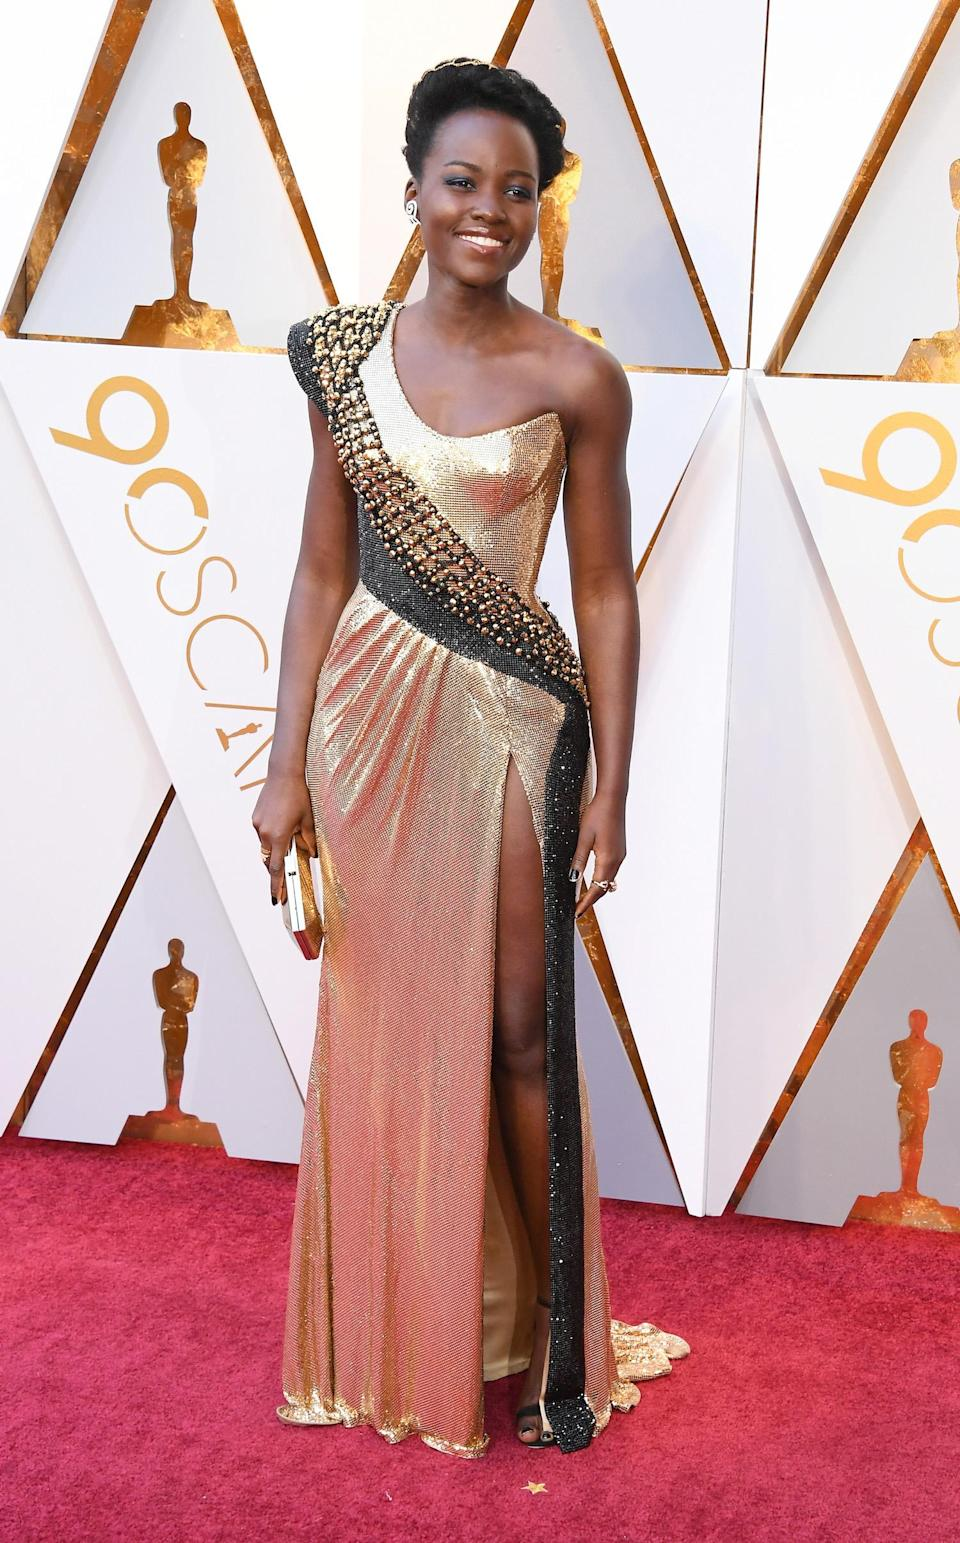 <p>Nyong'o attends the 90th Annual Academy Awards at Hollywood & Highland Center on March 4, 2018 in Hollywood, California.<br> (Photo by Steve Granitz/WireImage) </p>